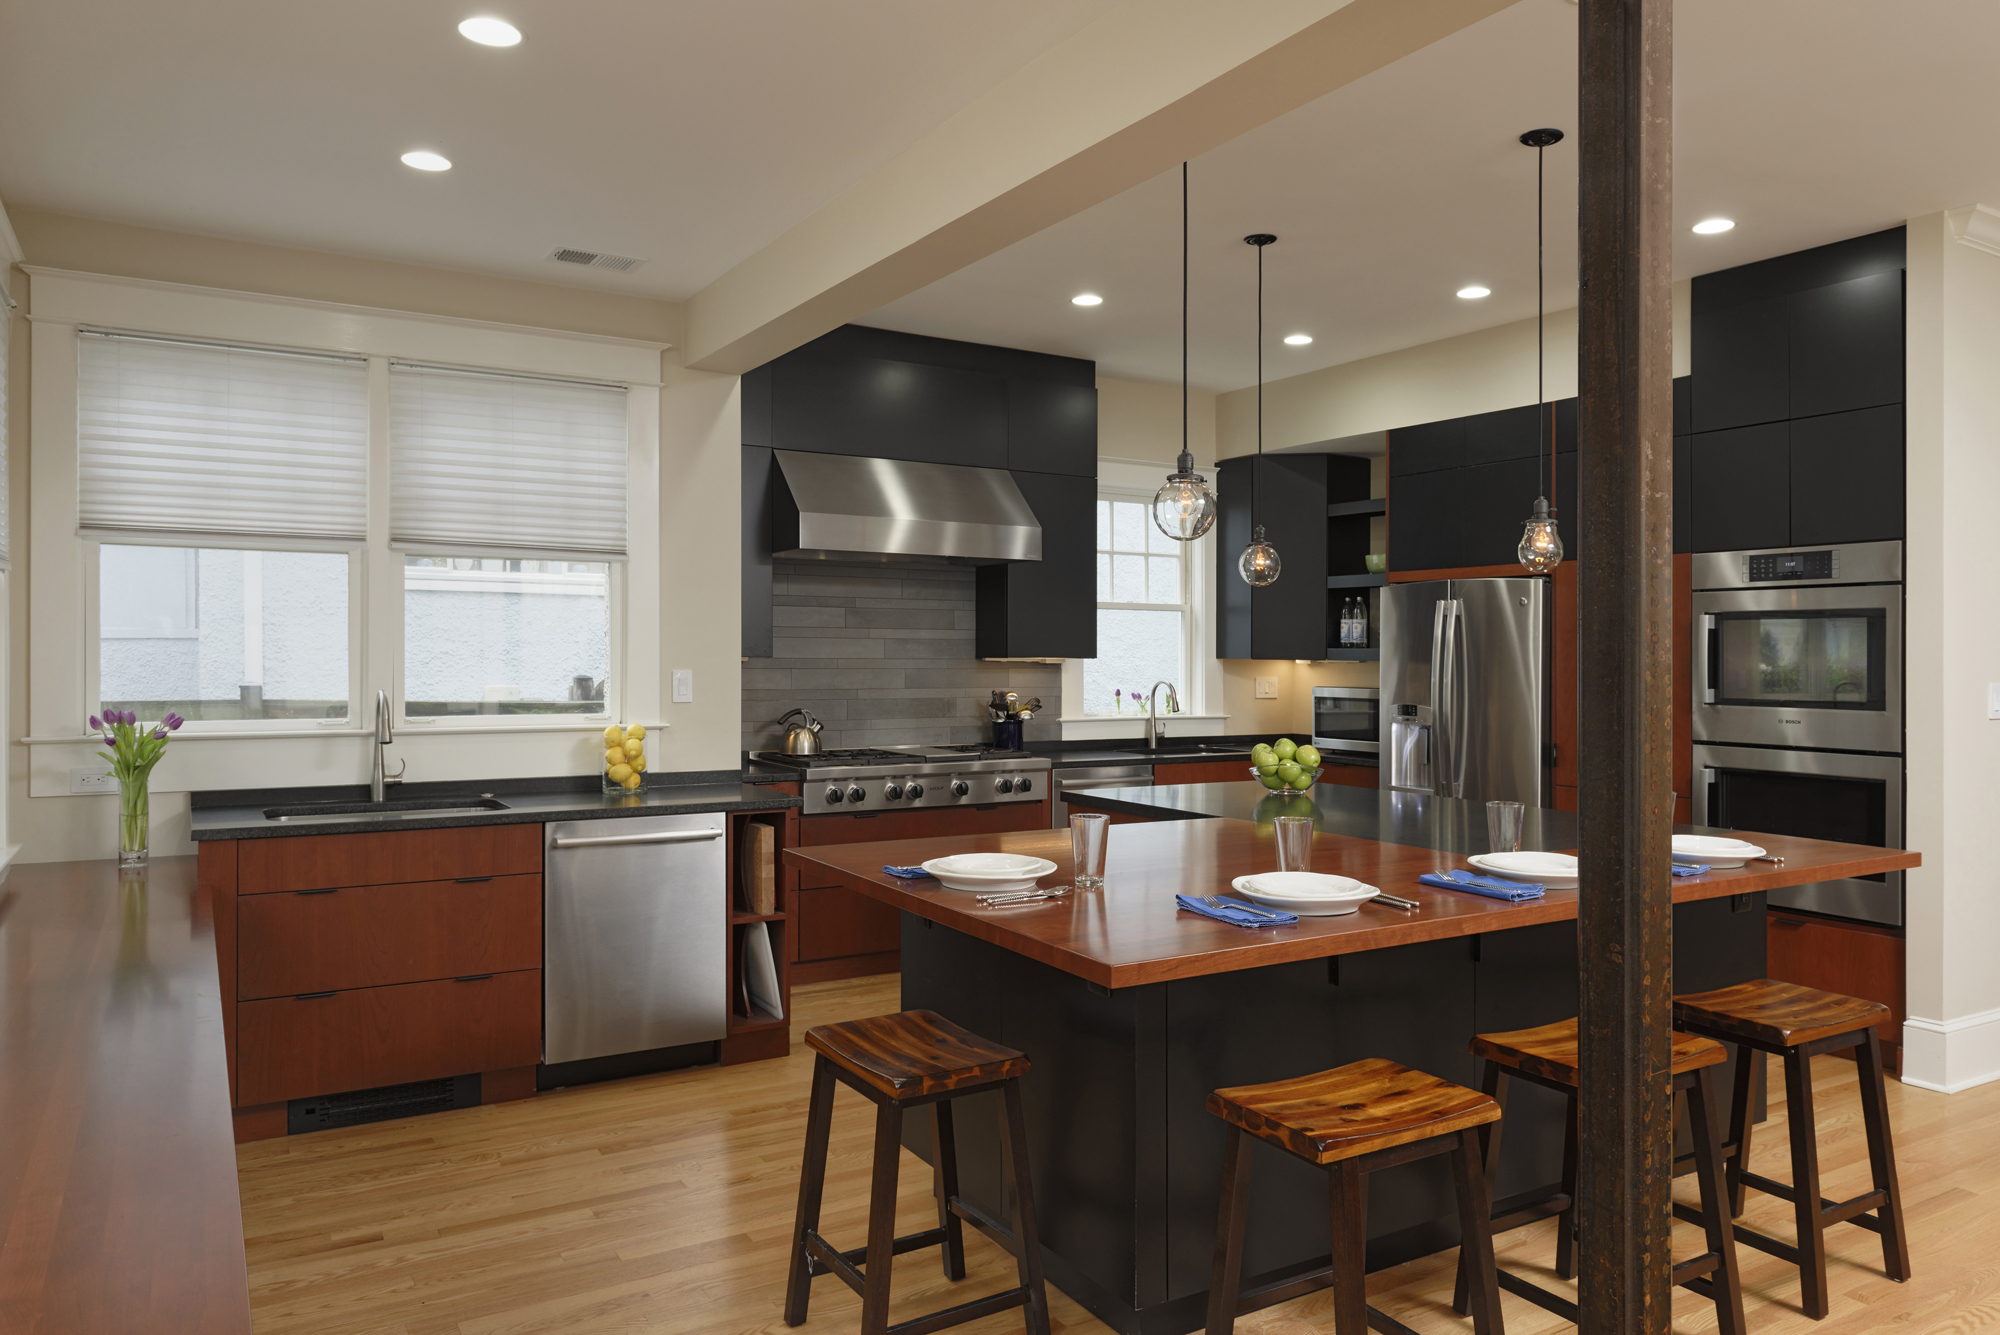 Kitchens breakfast dining rooms photo gallery bowa Kitchen design remodel dc